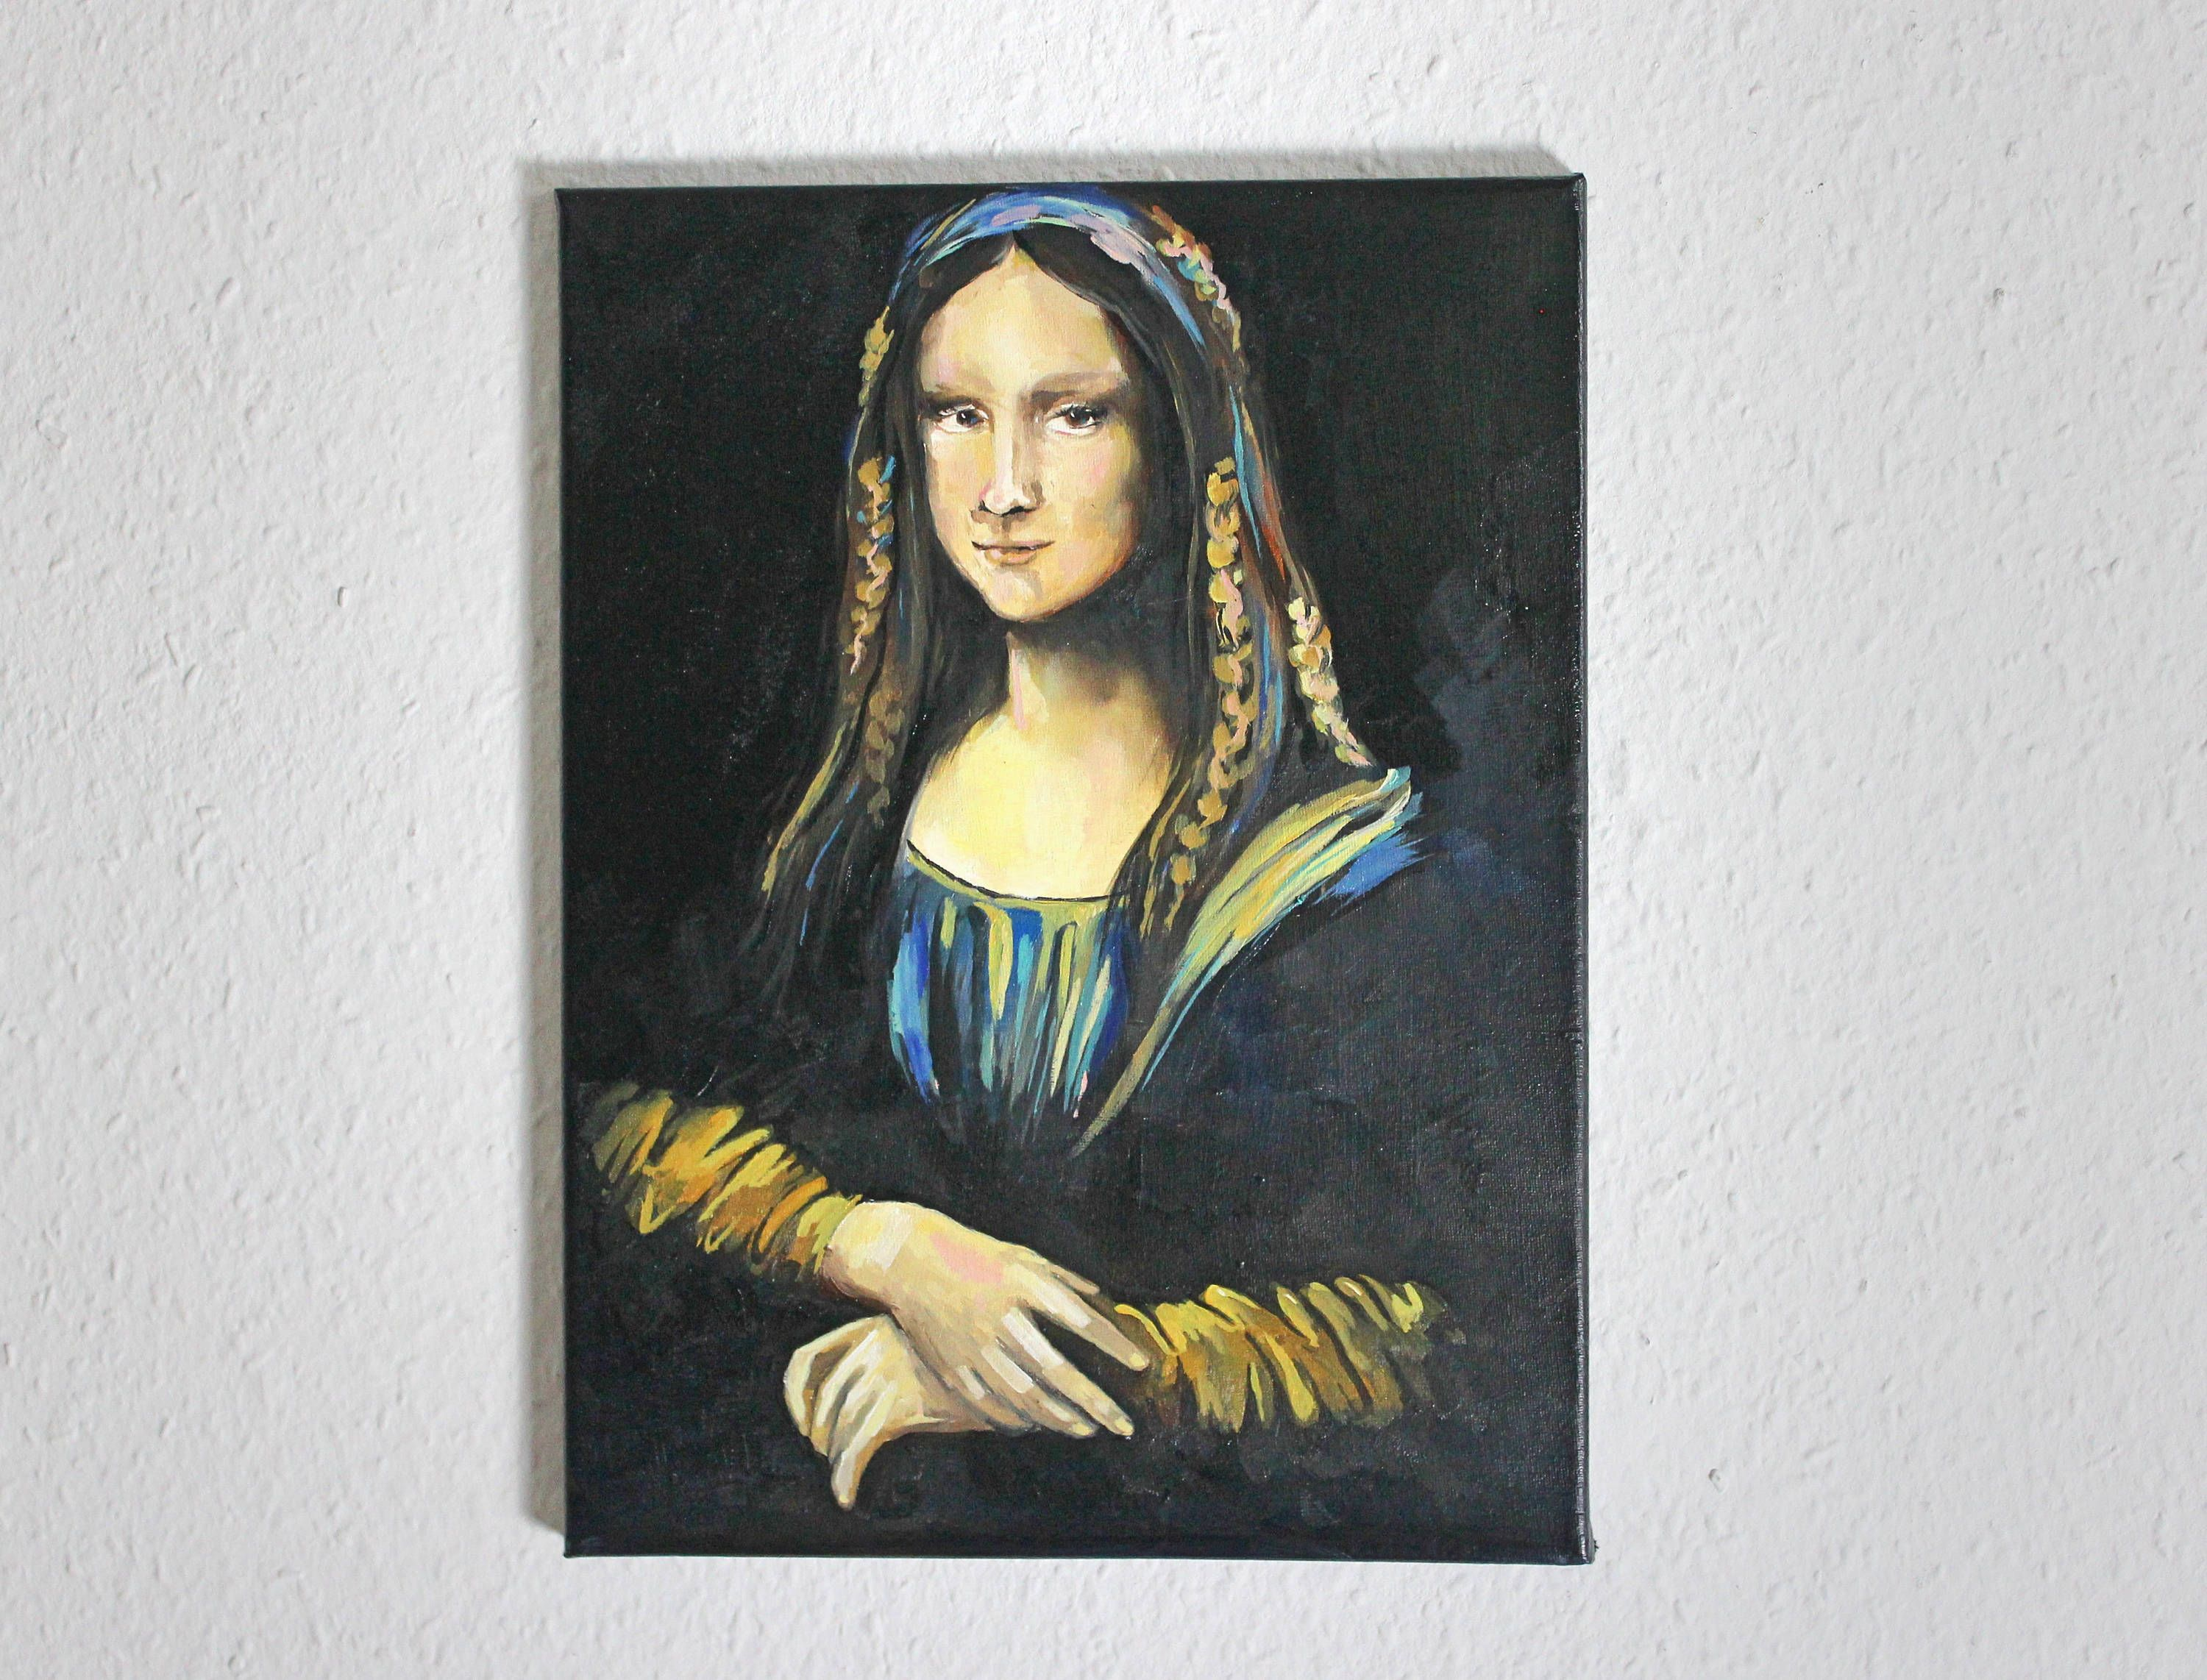 Oil Painting On Canvas Mona Lisa Contemporary Art Classic Painting With A Modern Twist Portrait Portrait Painting Classic Paintings Oil Painting On Canvas